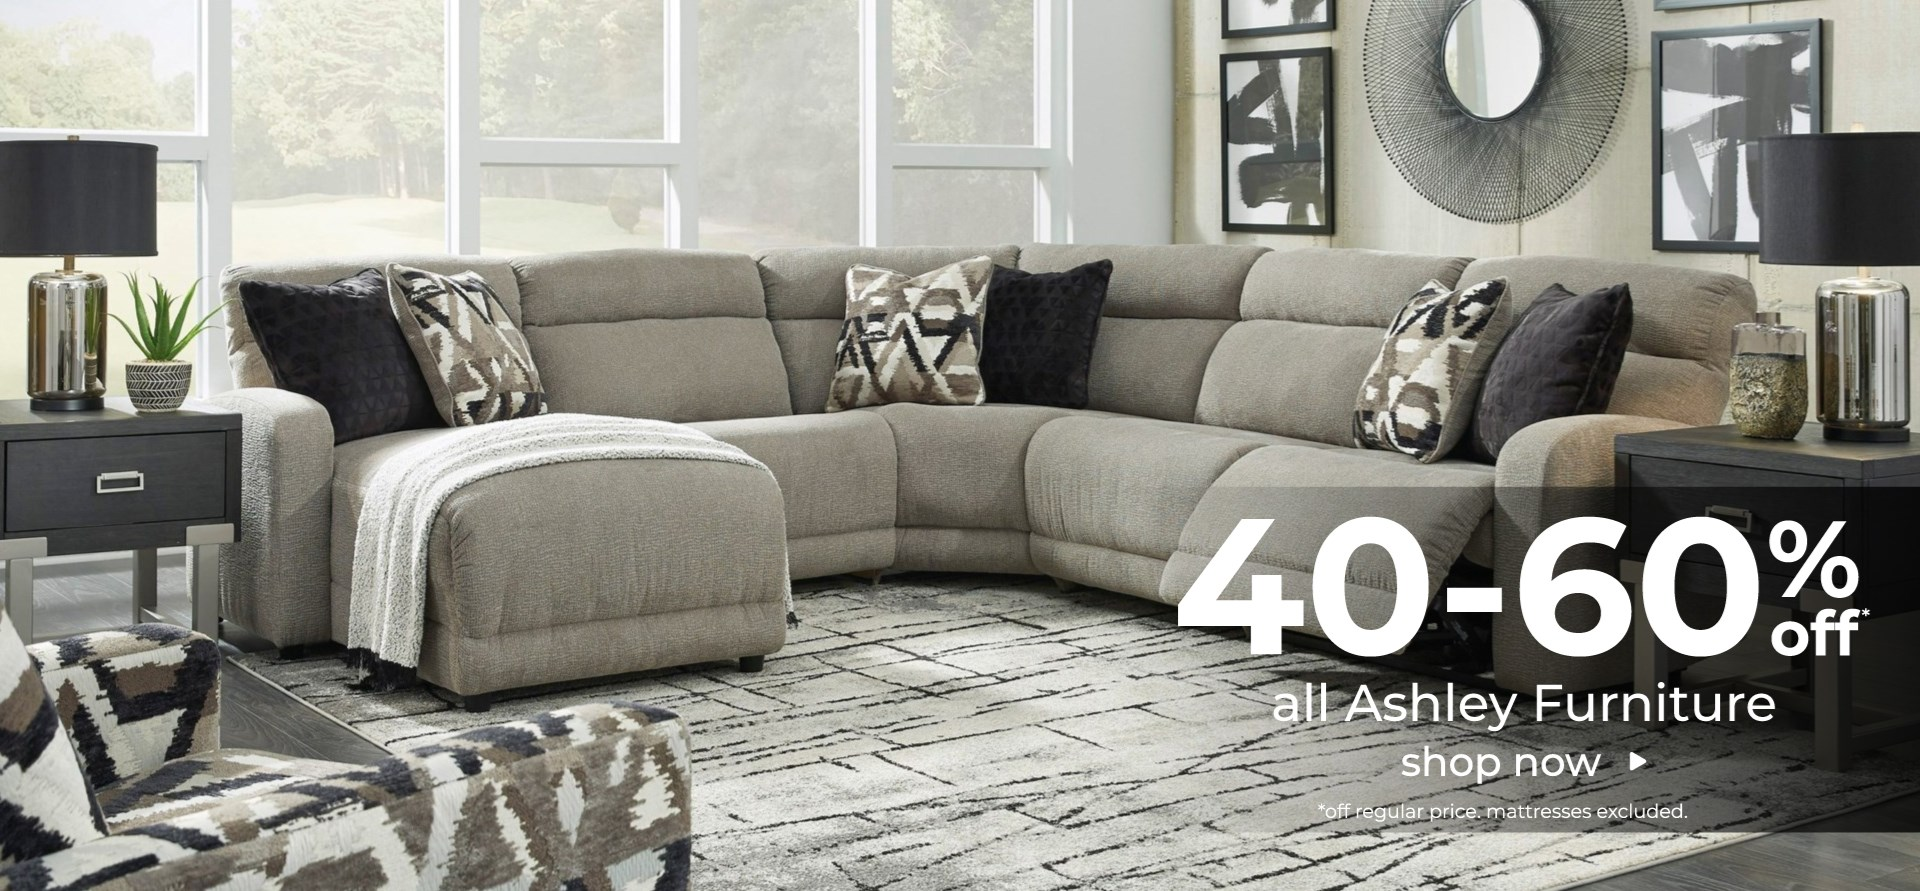 Shop all Ashley Furniture